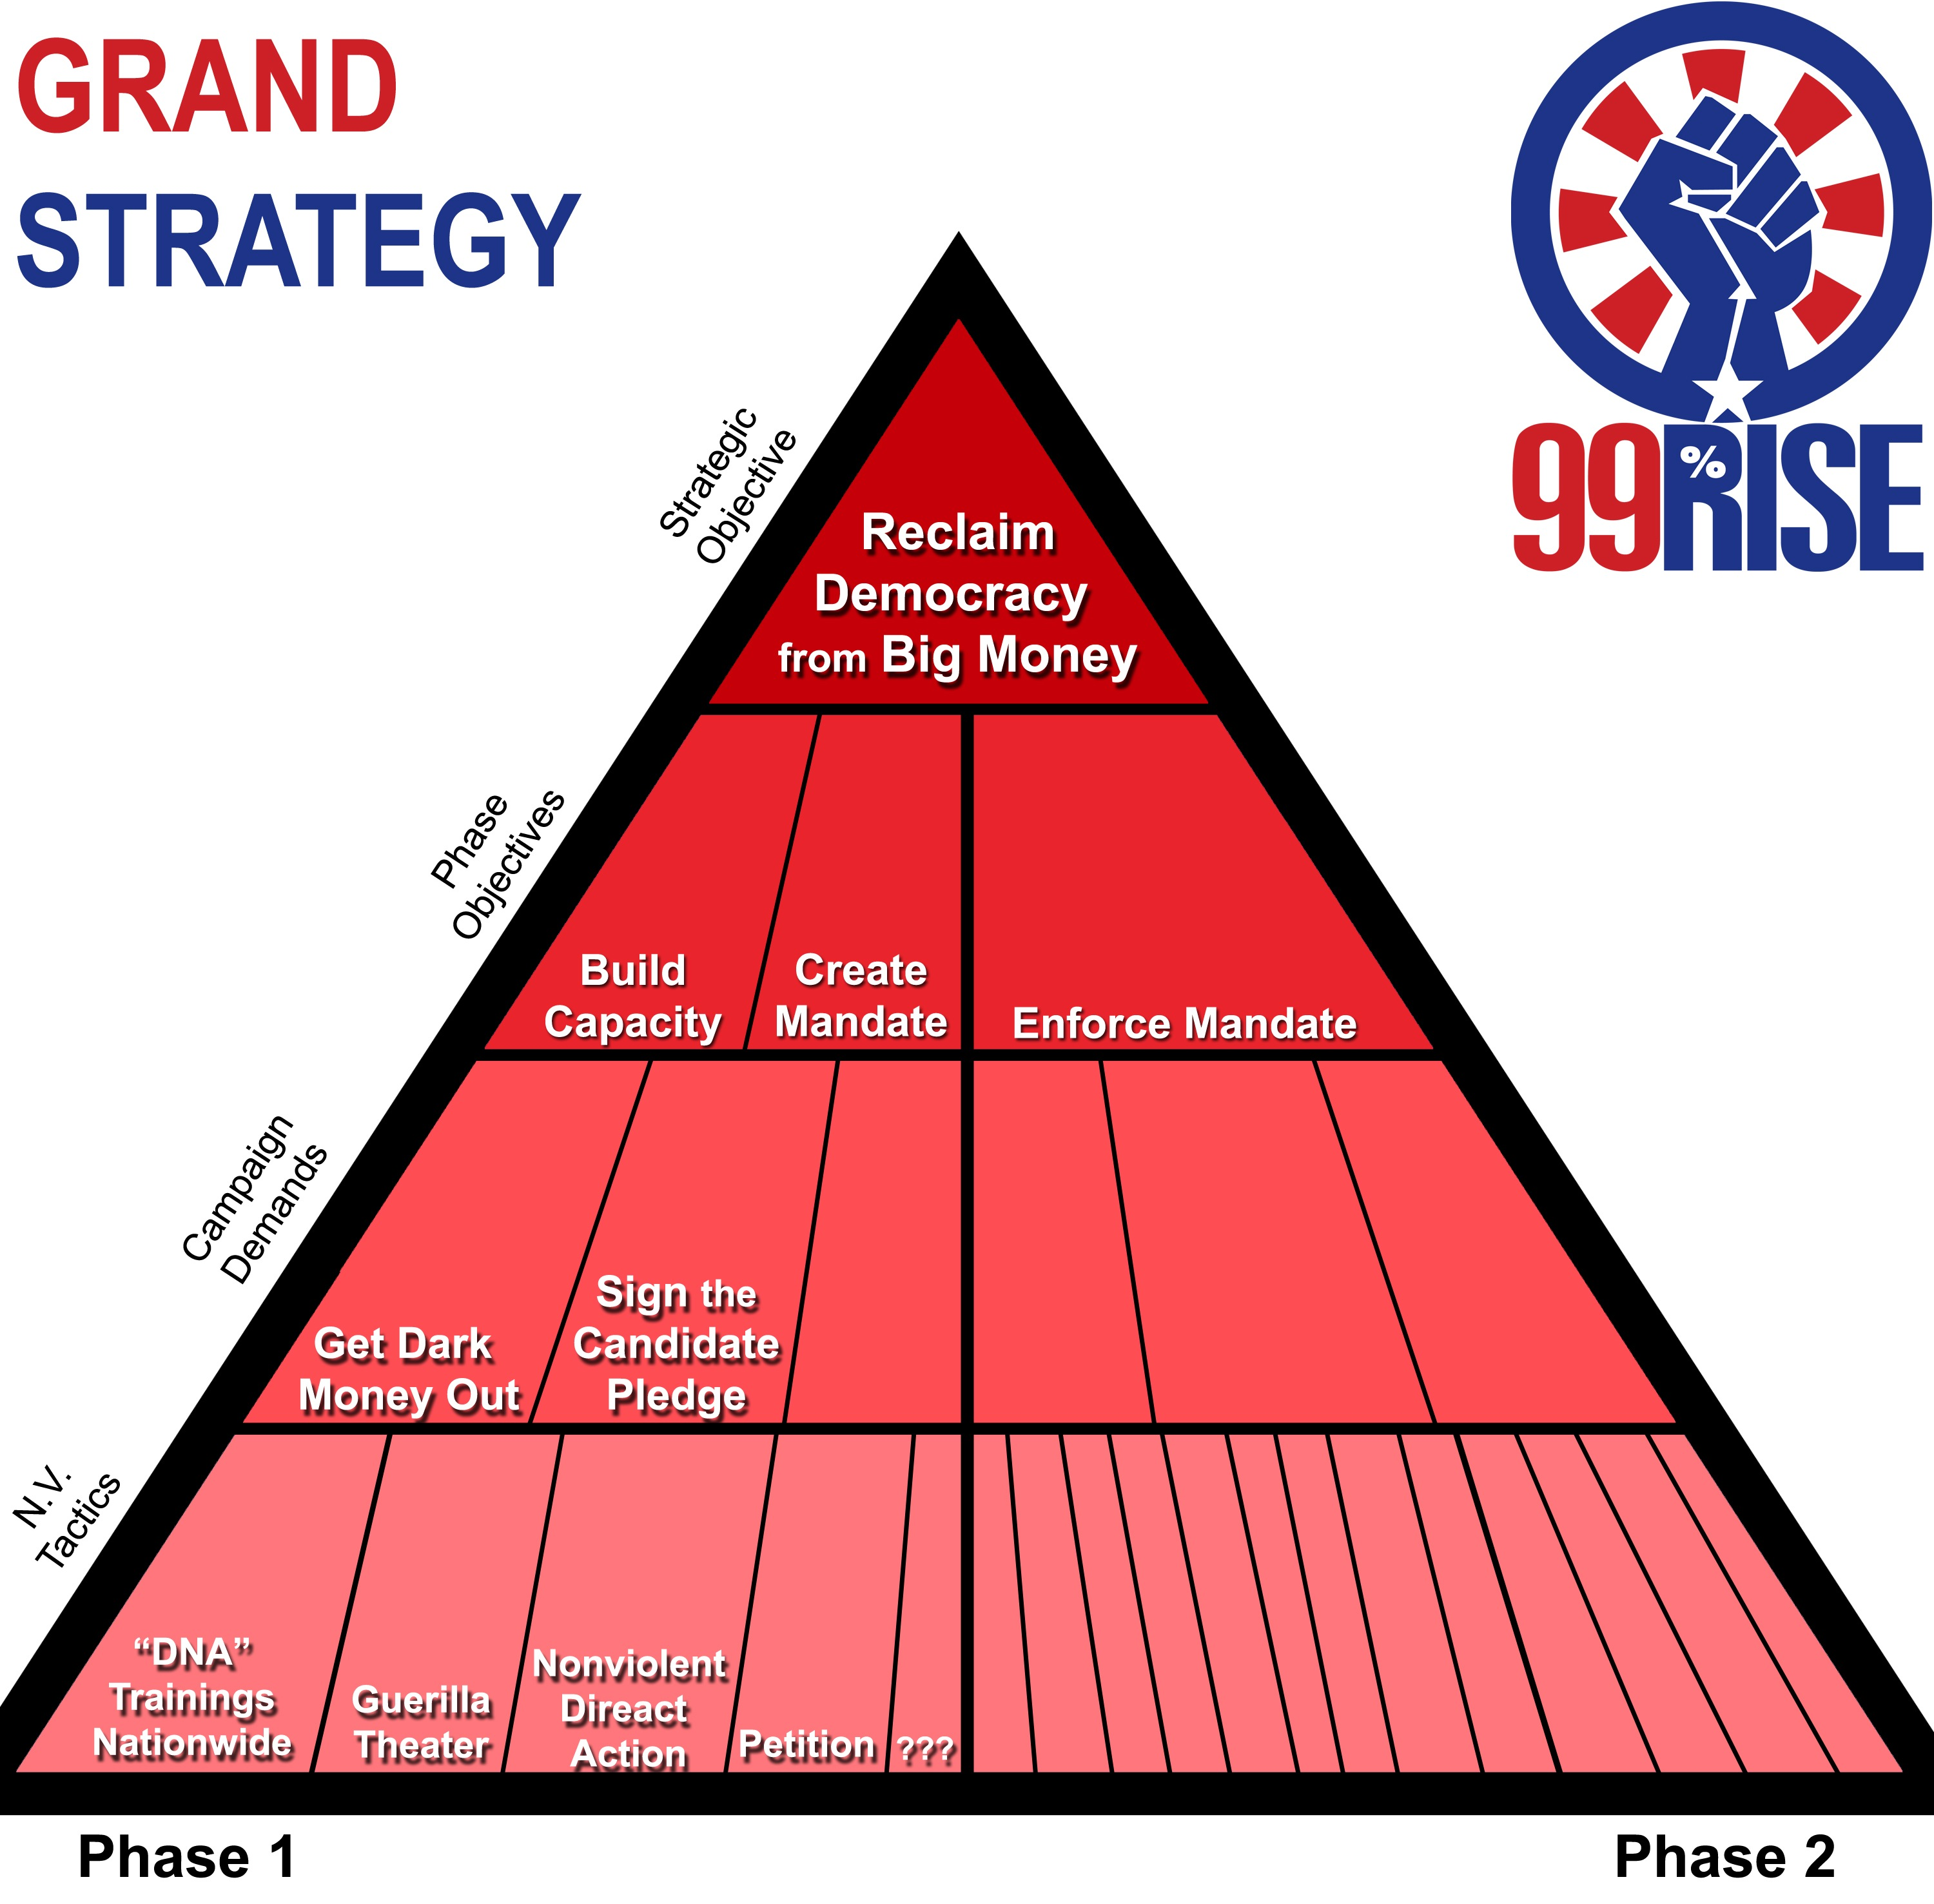 what is grand strategy An american grand strategy is a set of coordinated and sustained policies designed to address the long-term threats and opportunities that lie beyond its shores[2] there are three grand strategies the united states may pursue: primacy, offshore balancing and liberal internationalism.